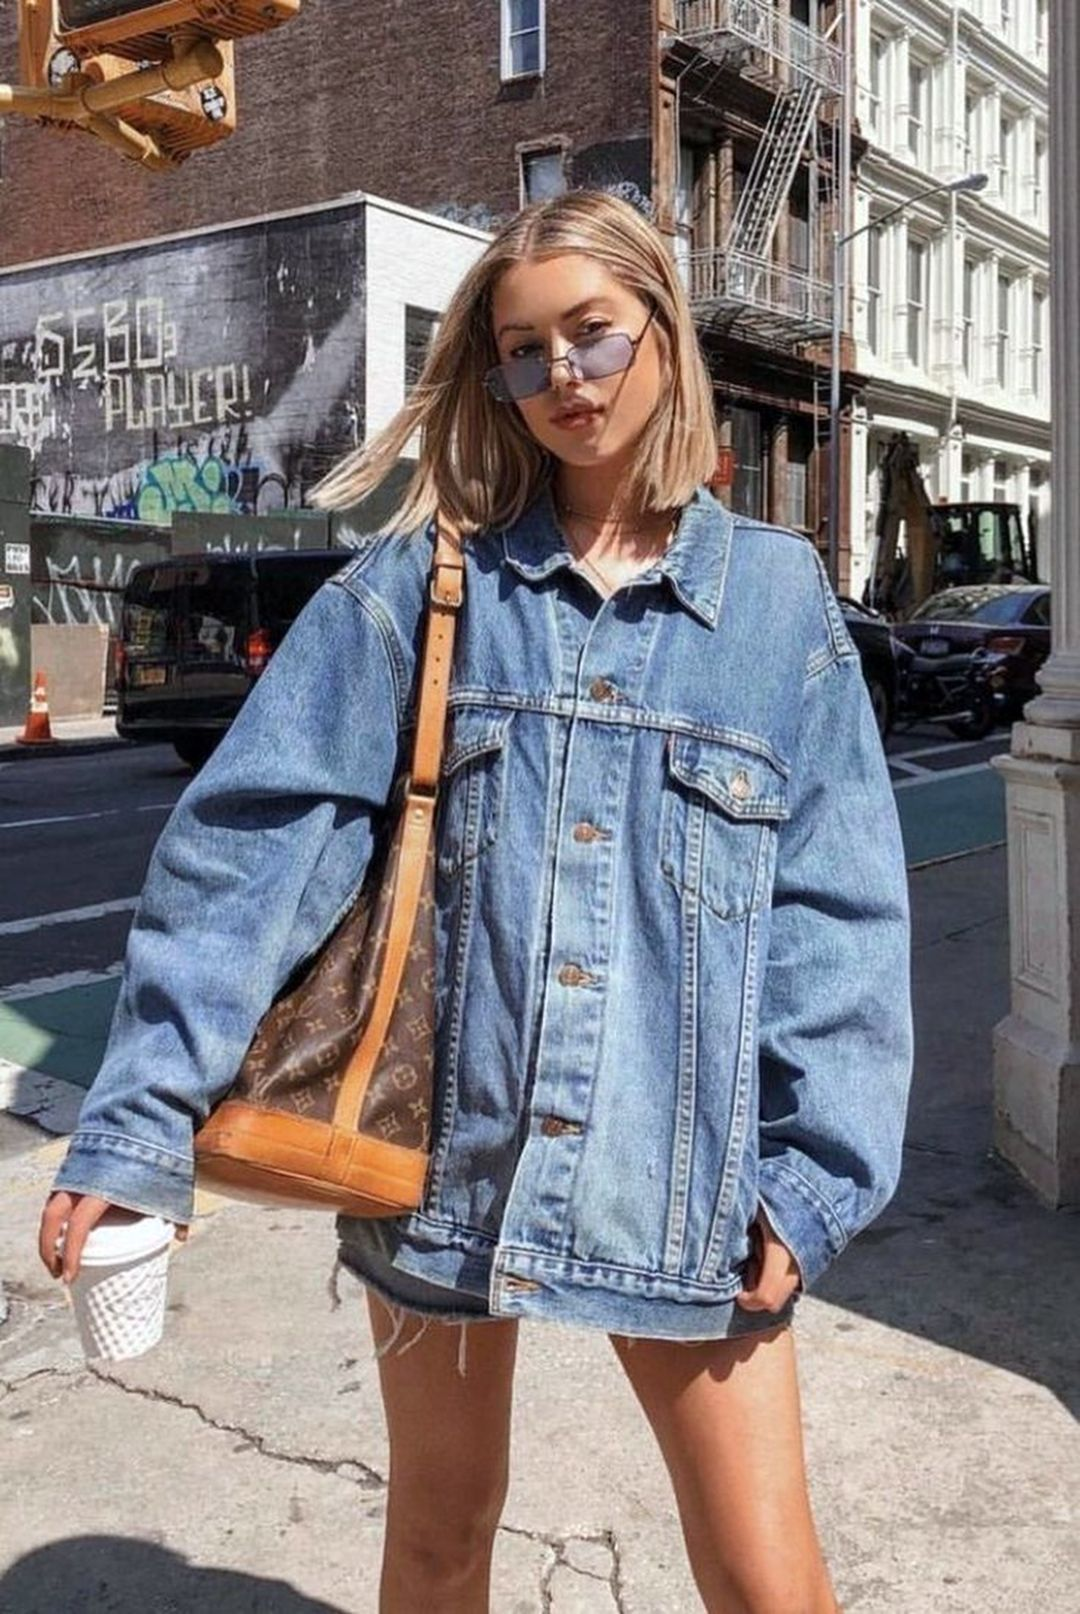 26 Cool Denim Jacket Outfits Ideas to Make You Look Fashionable